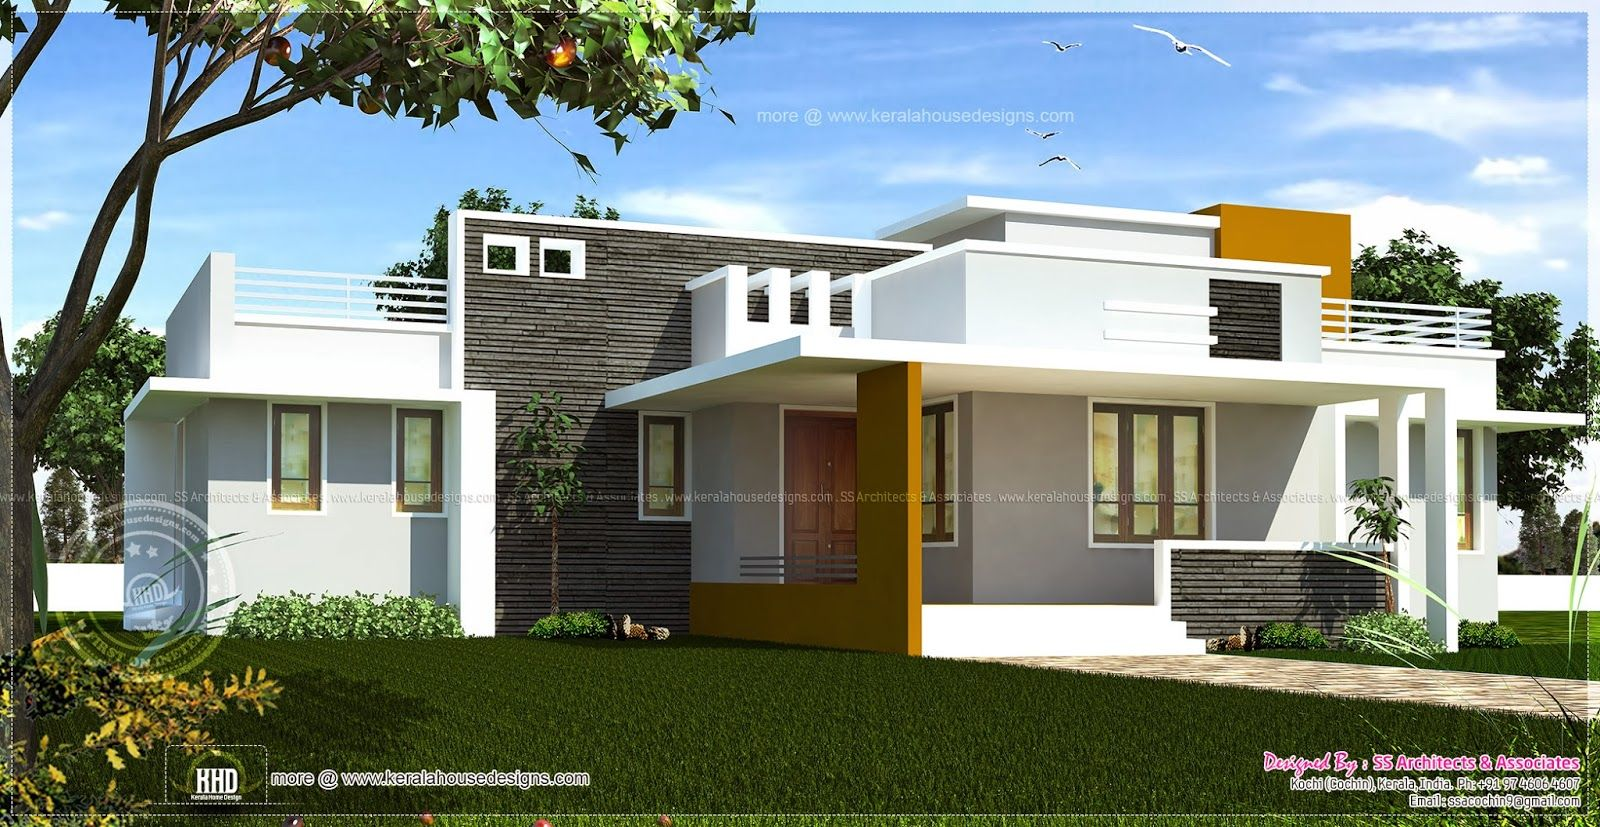 Excellent single home designs single floor contemporary for Www kerala house designs com